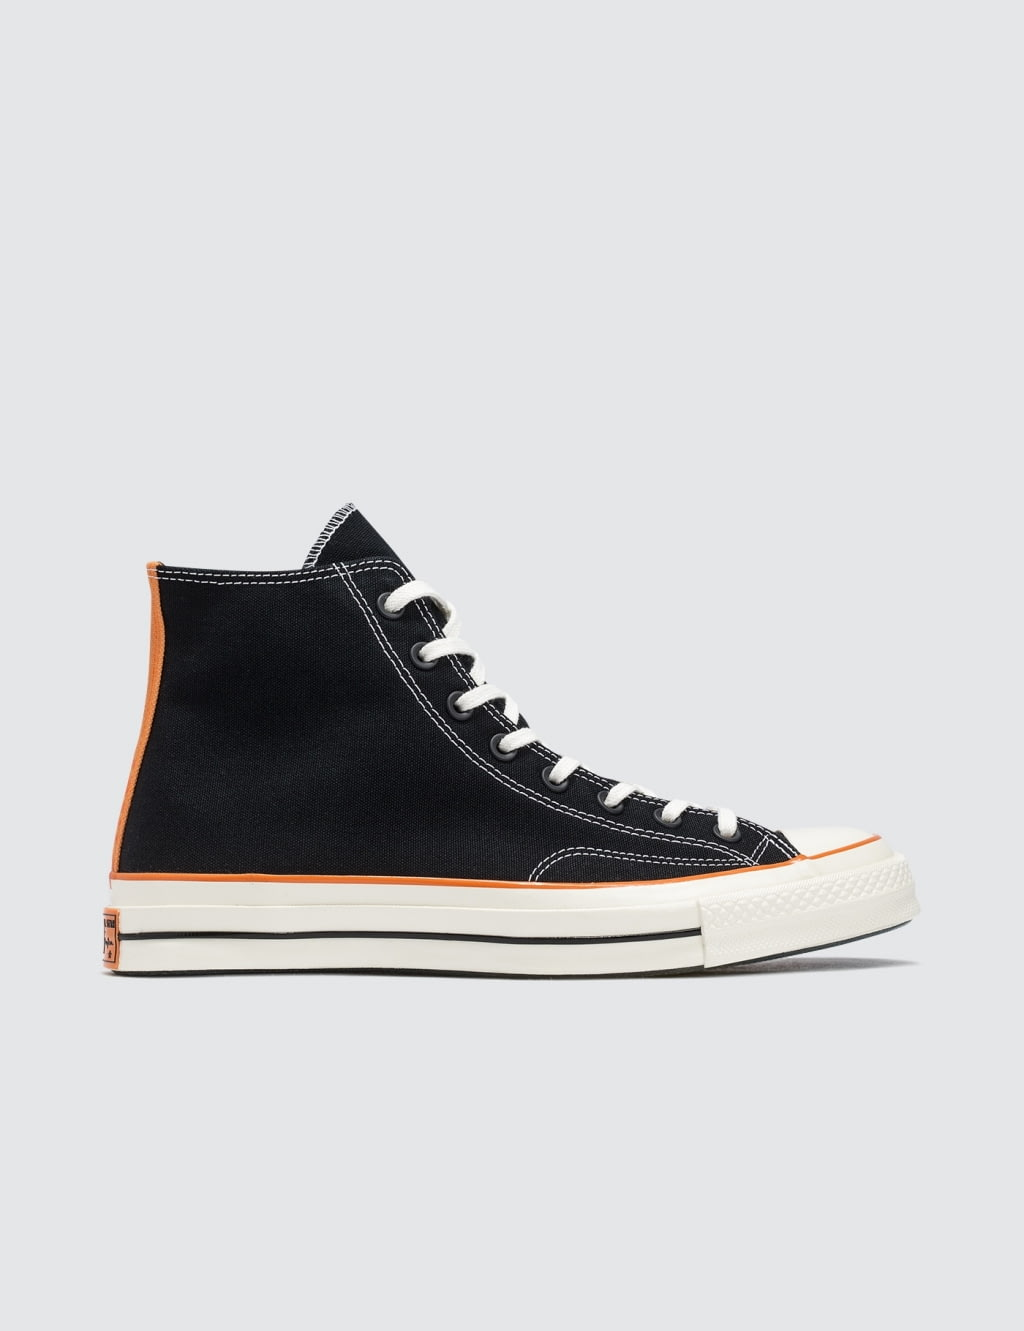 be1503985ff ... where can i buy converse x vince staples chuck taylor all star 70 hi  5557e 9554a